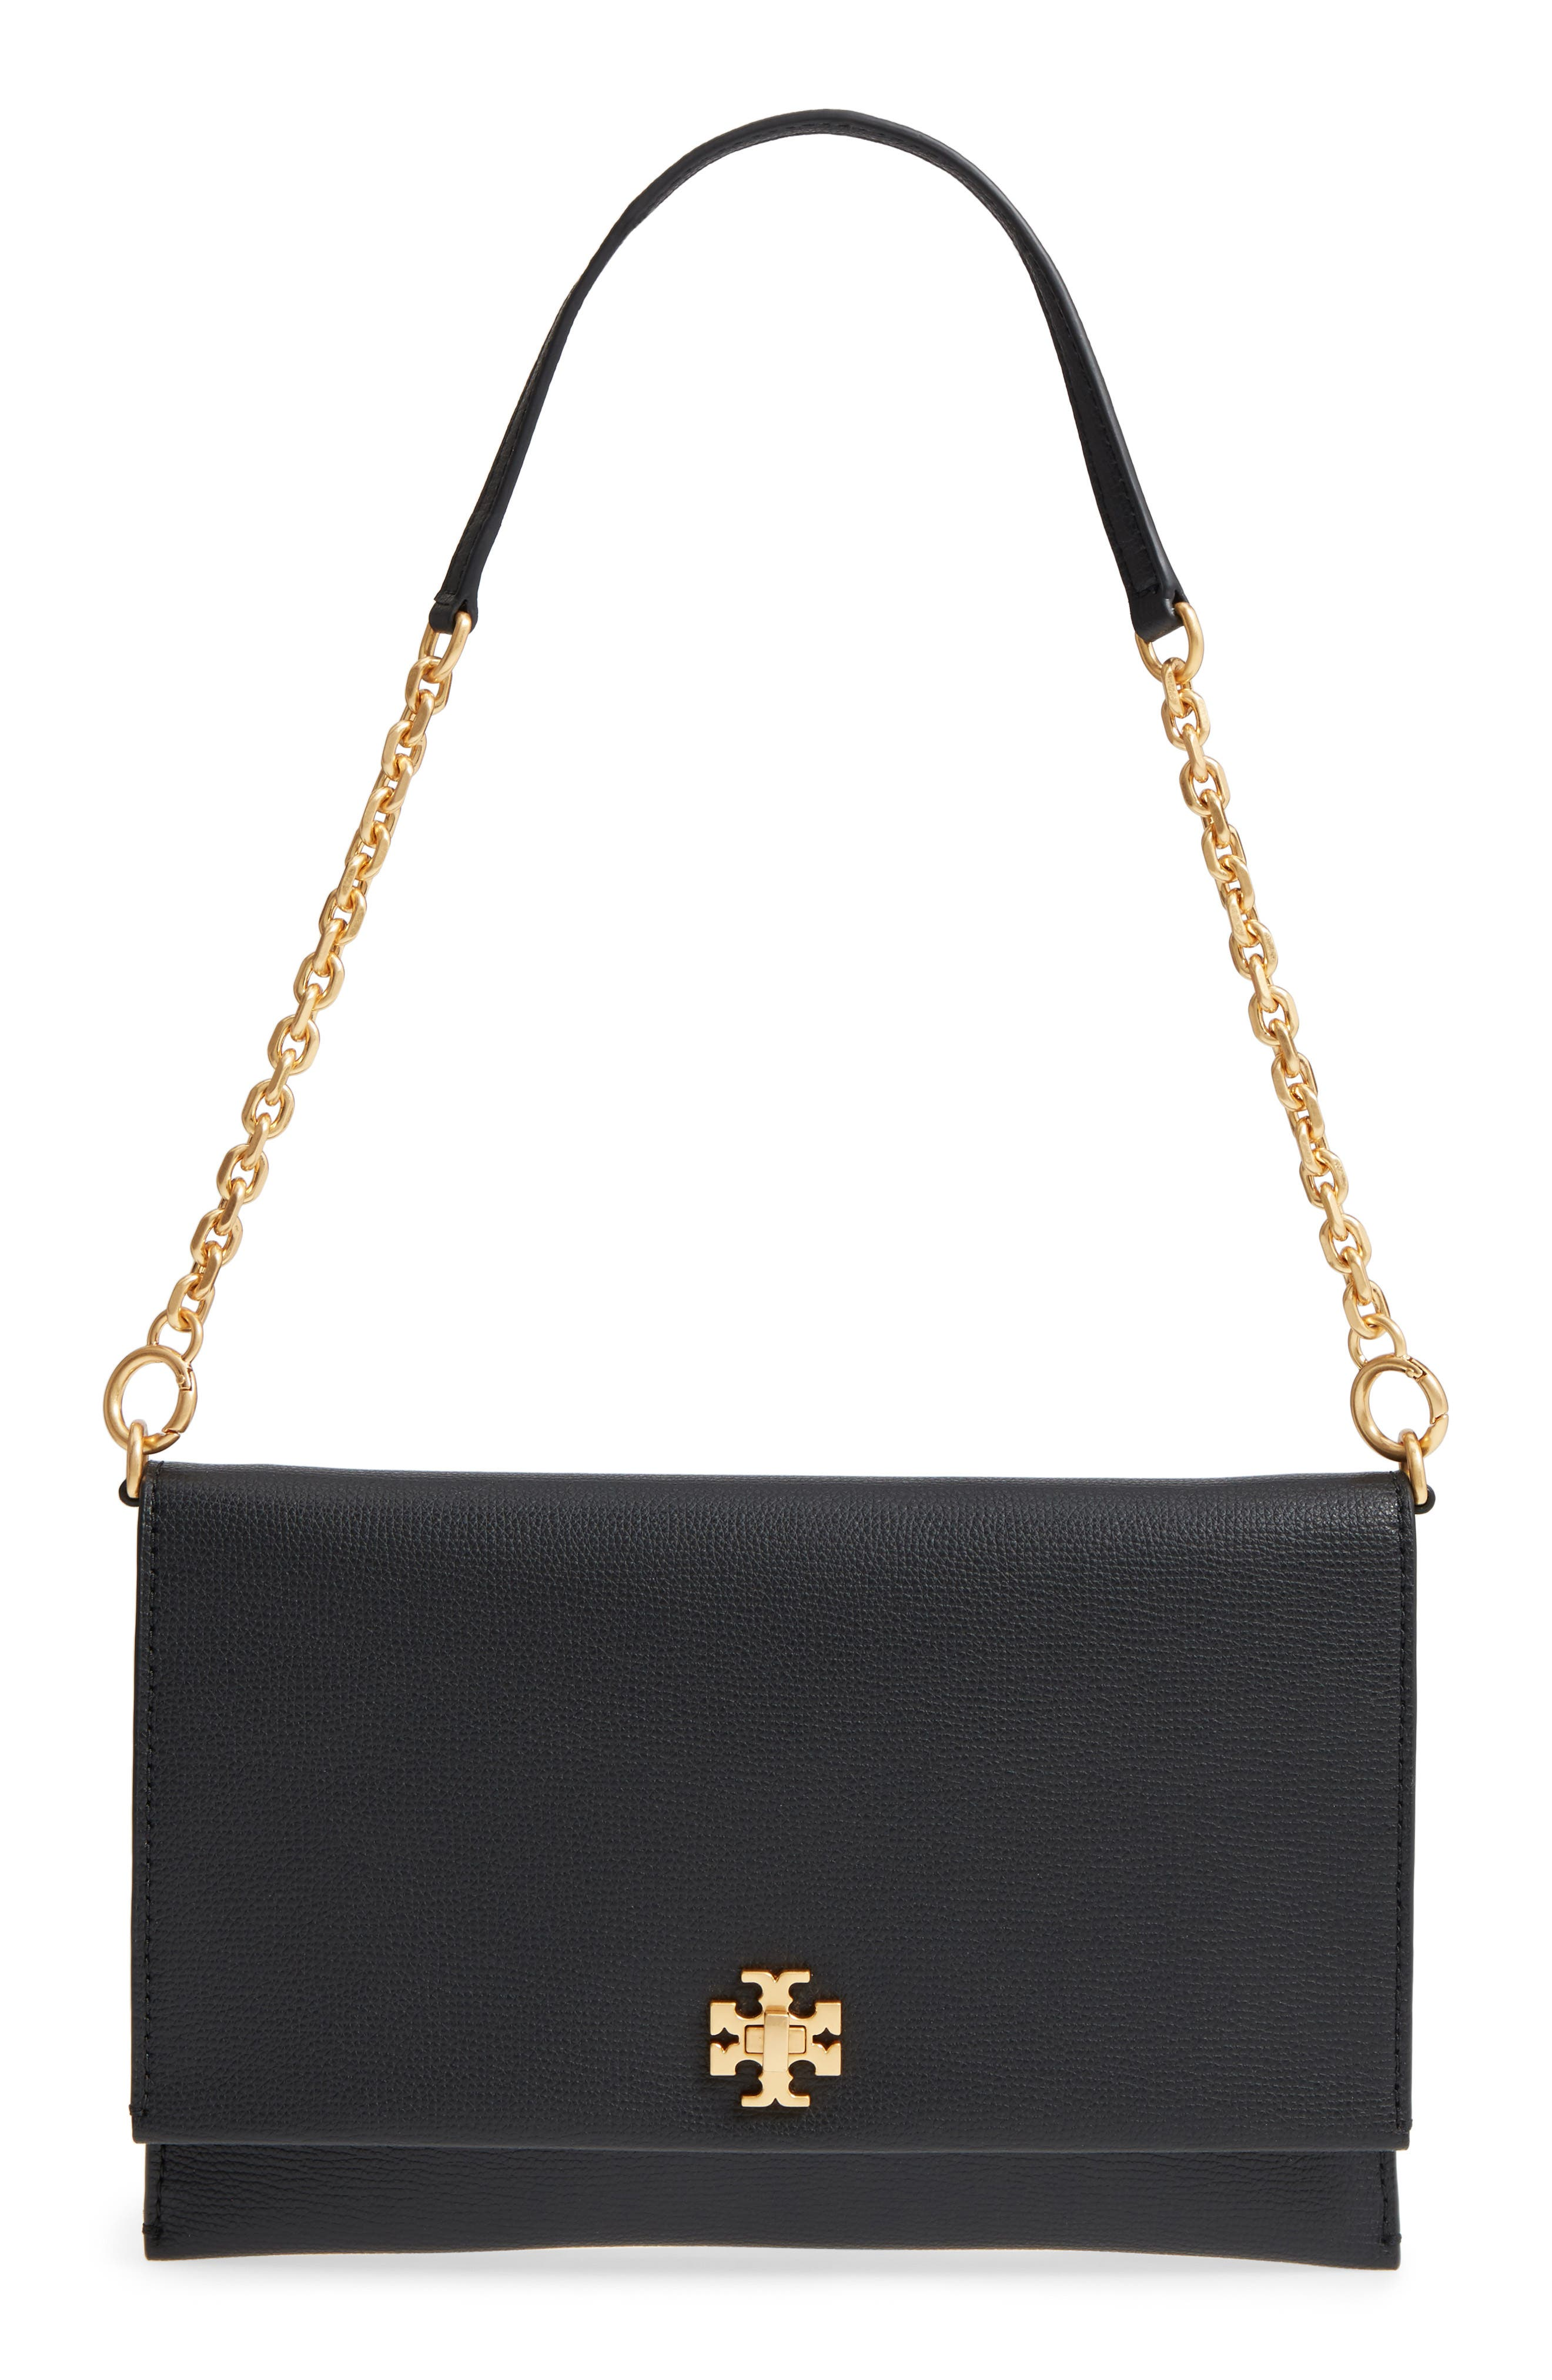 Tory Burch Kira Leather Clutch